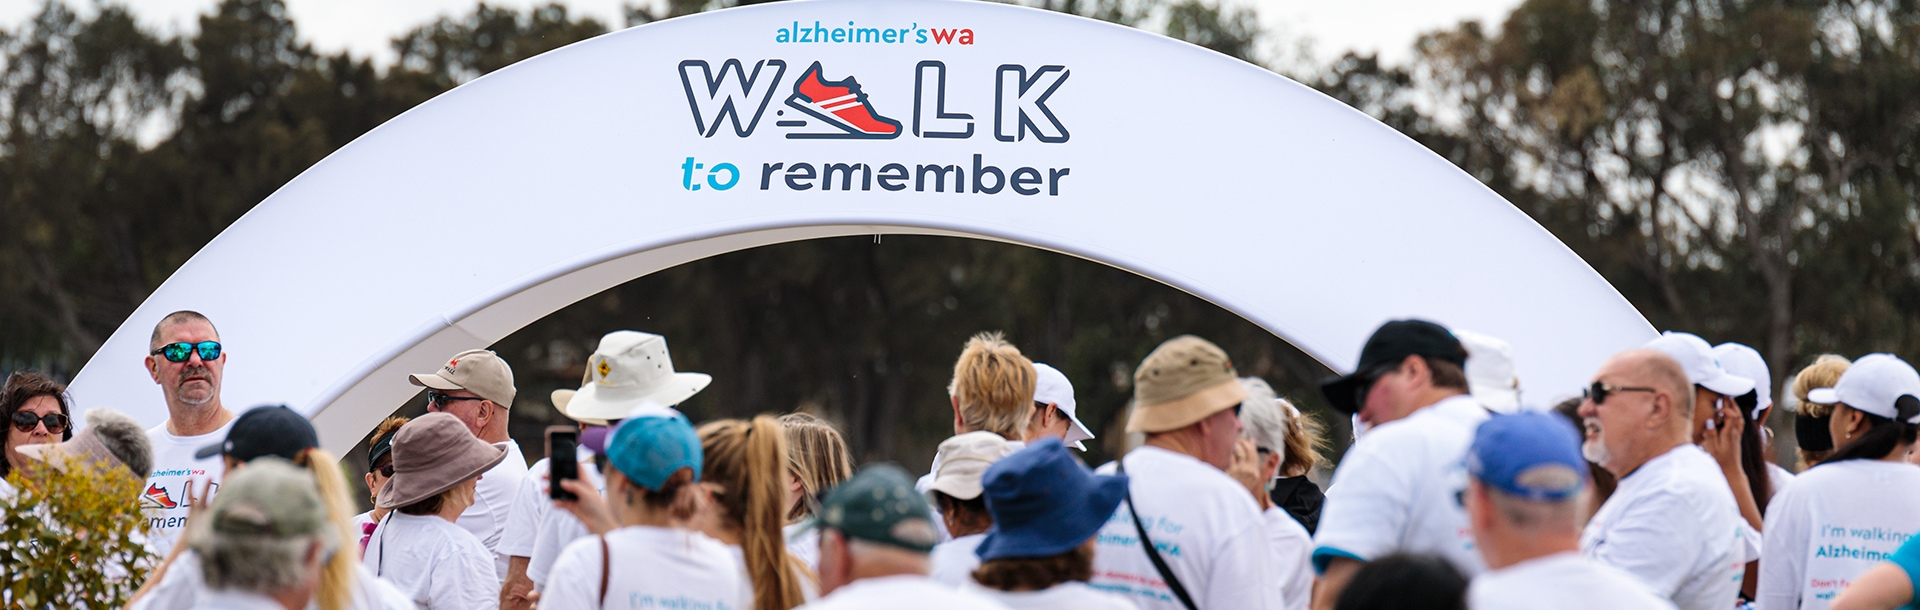 Join us as we Walk to Remember